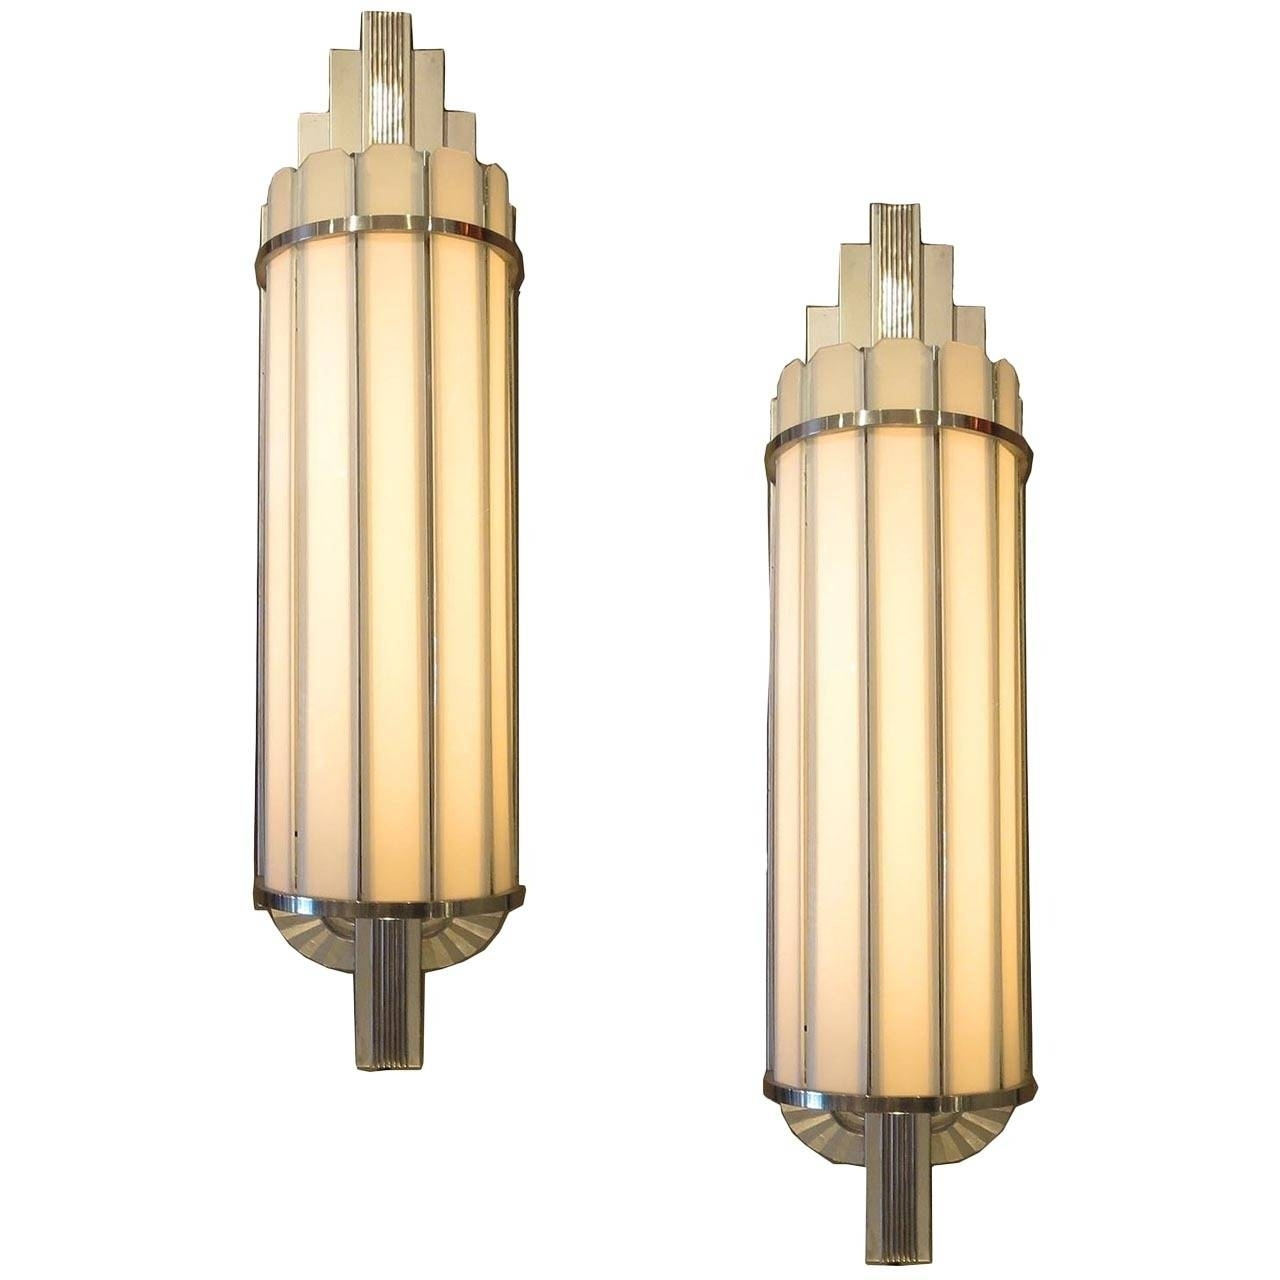 Popular Art Deco Wall Sconce